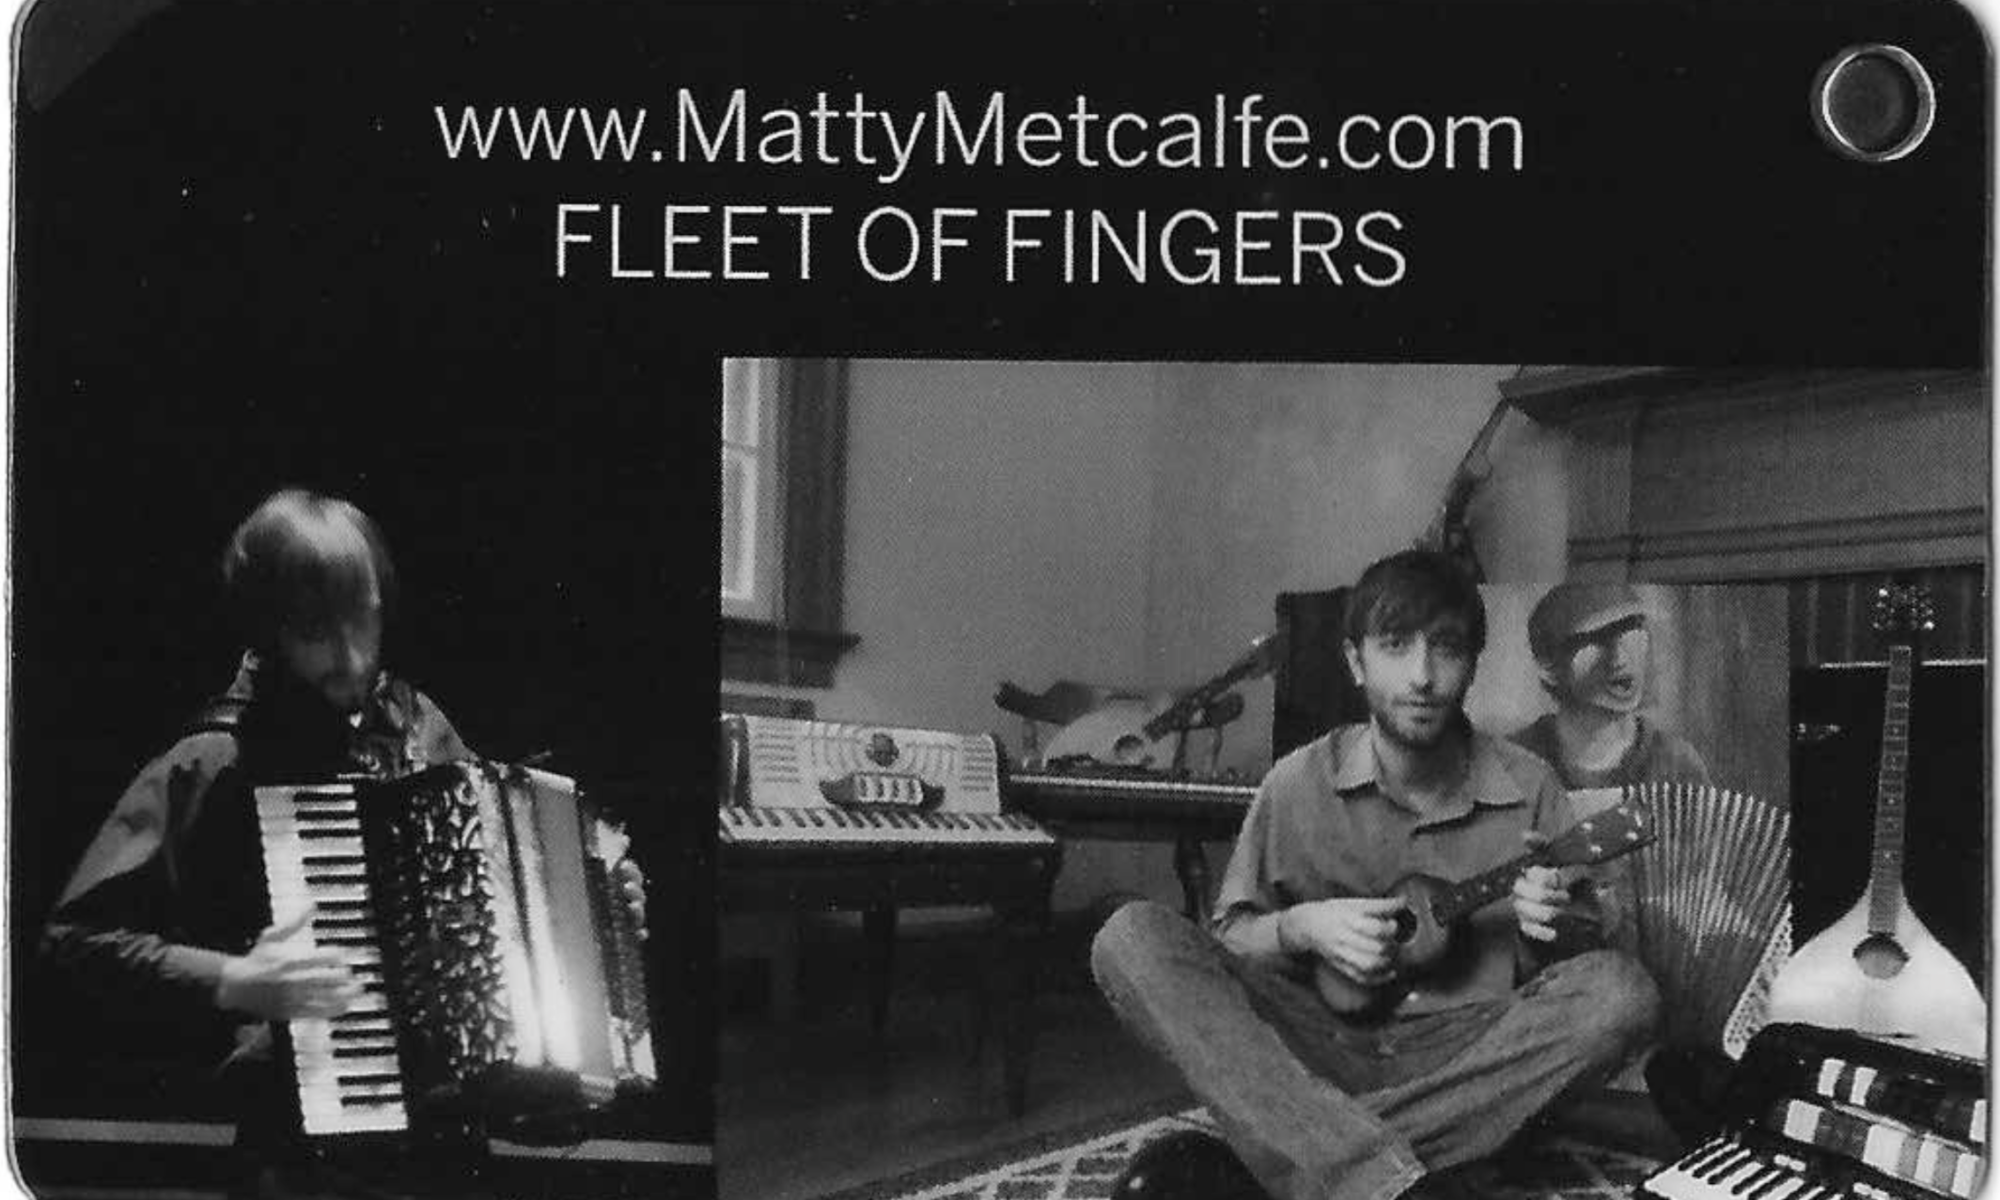 Fleet of Fingers